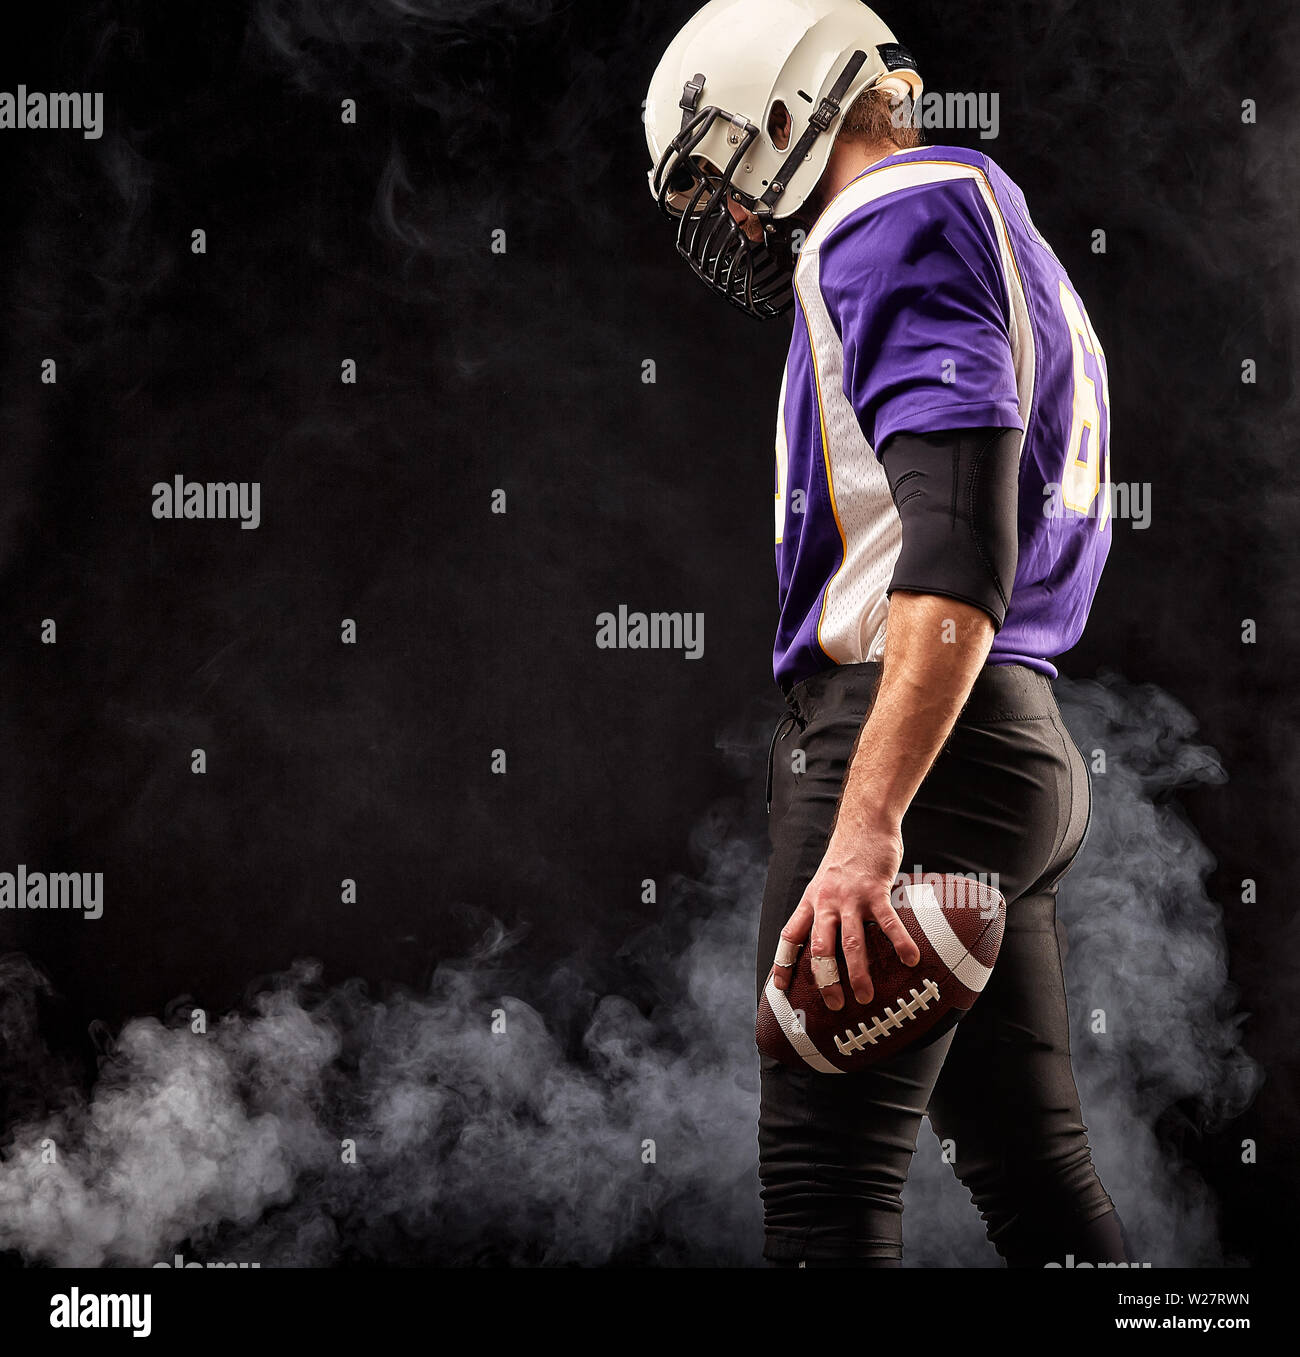 Portrait close-up, American football player, bearded without a helmet with the ball in his hands. Concept American football, patriotism, close-up. - Stock Image